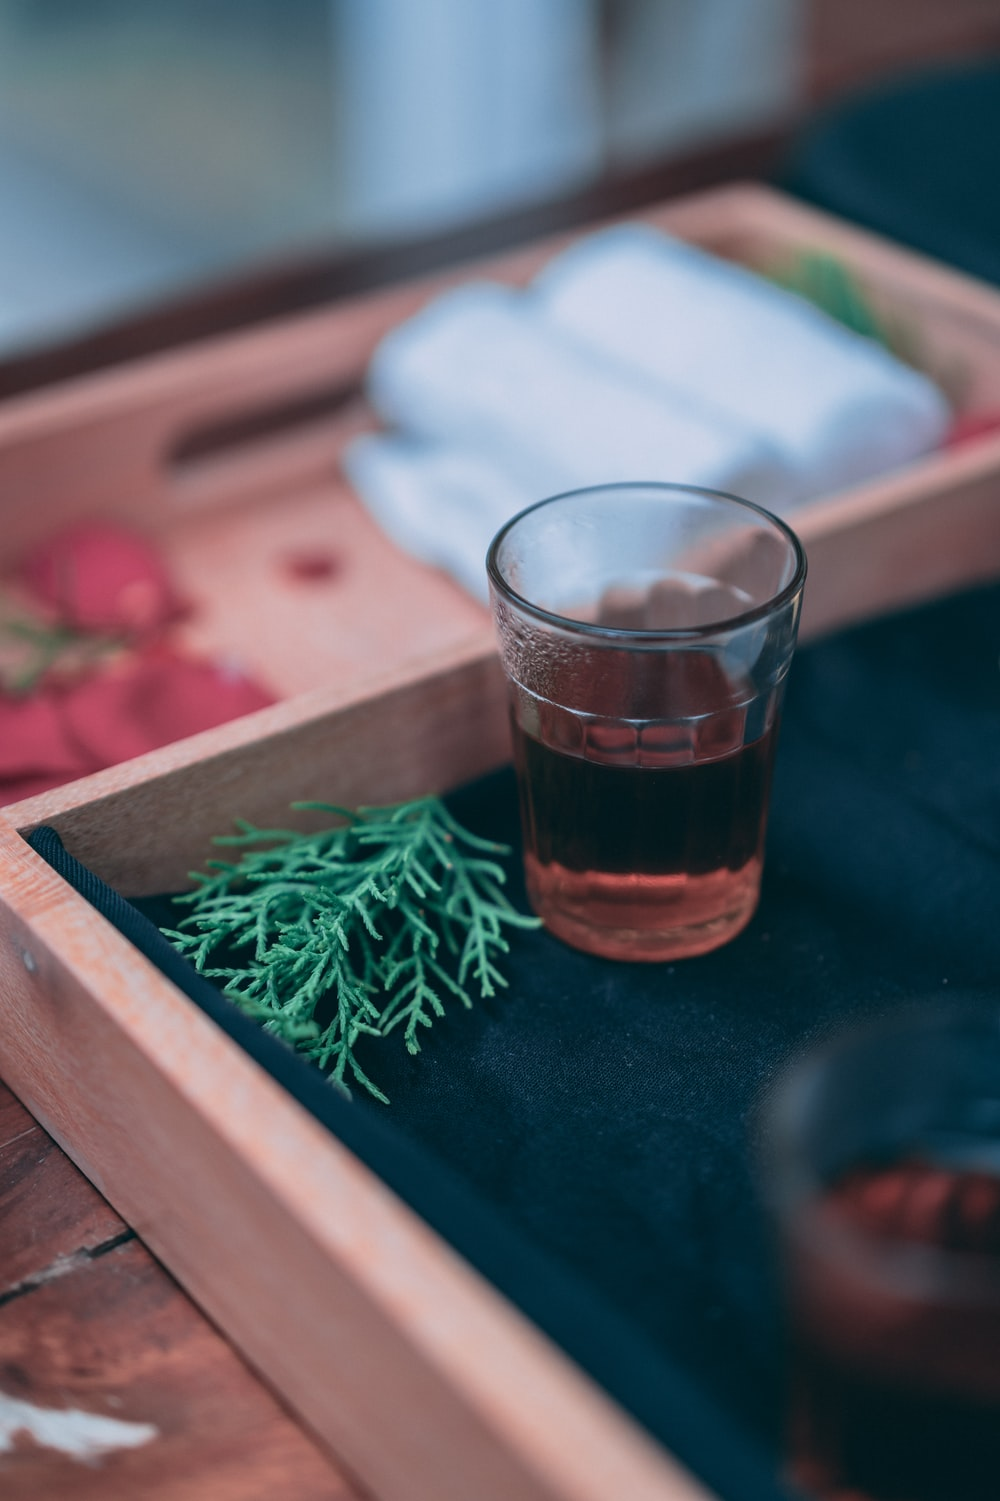 clear drinking glass with brown liquid on brown wooden tray